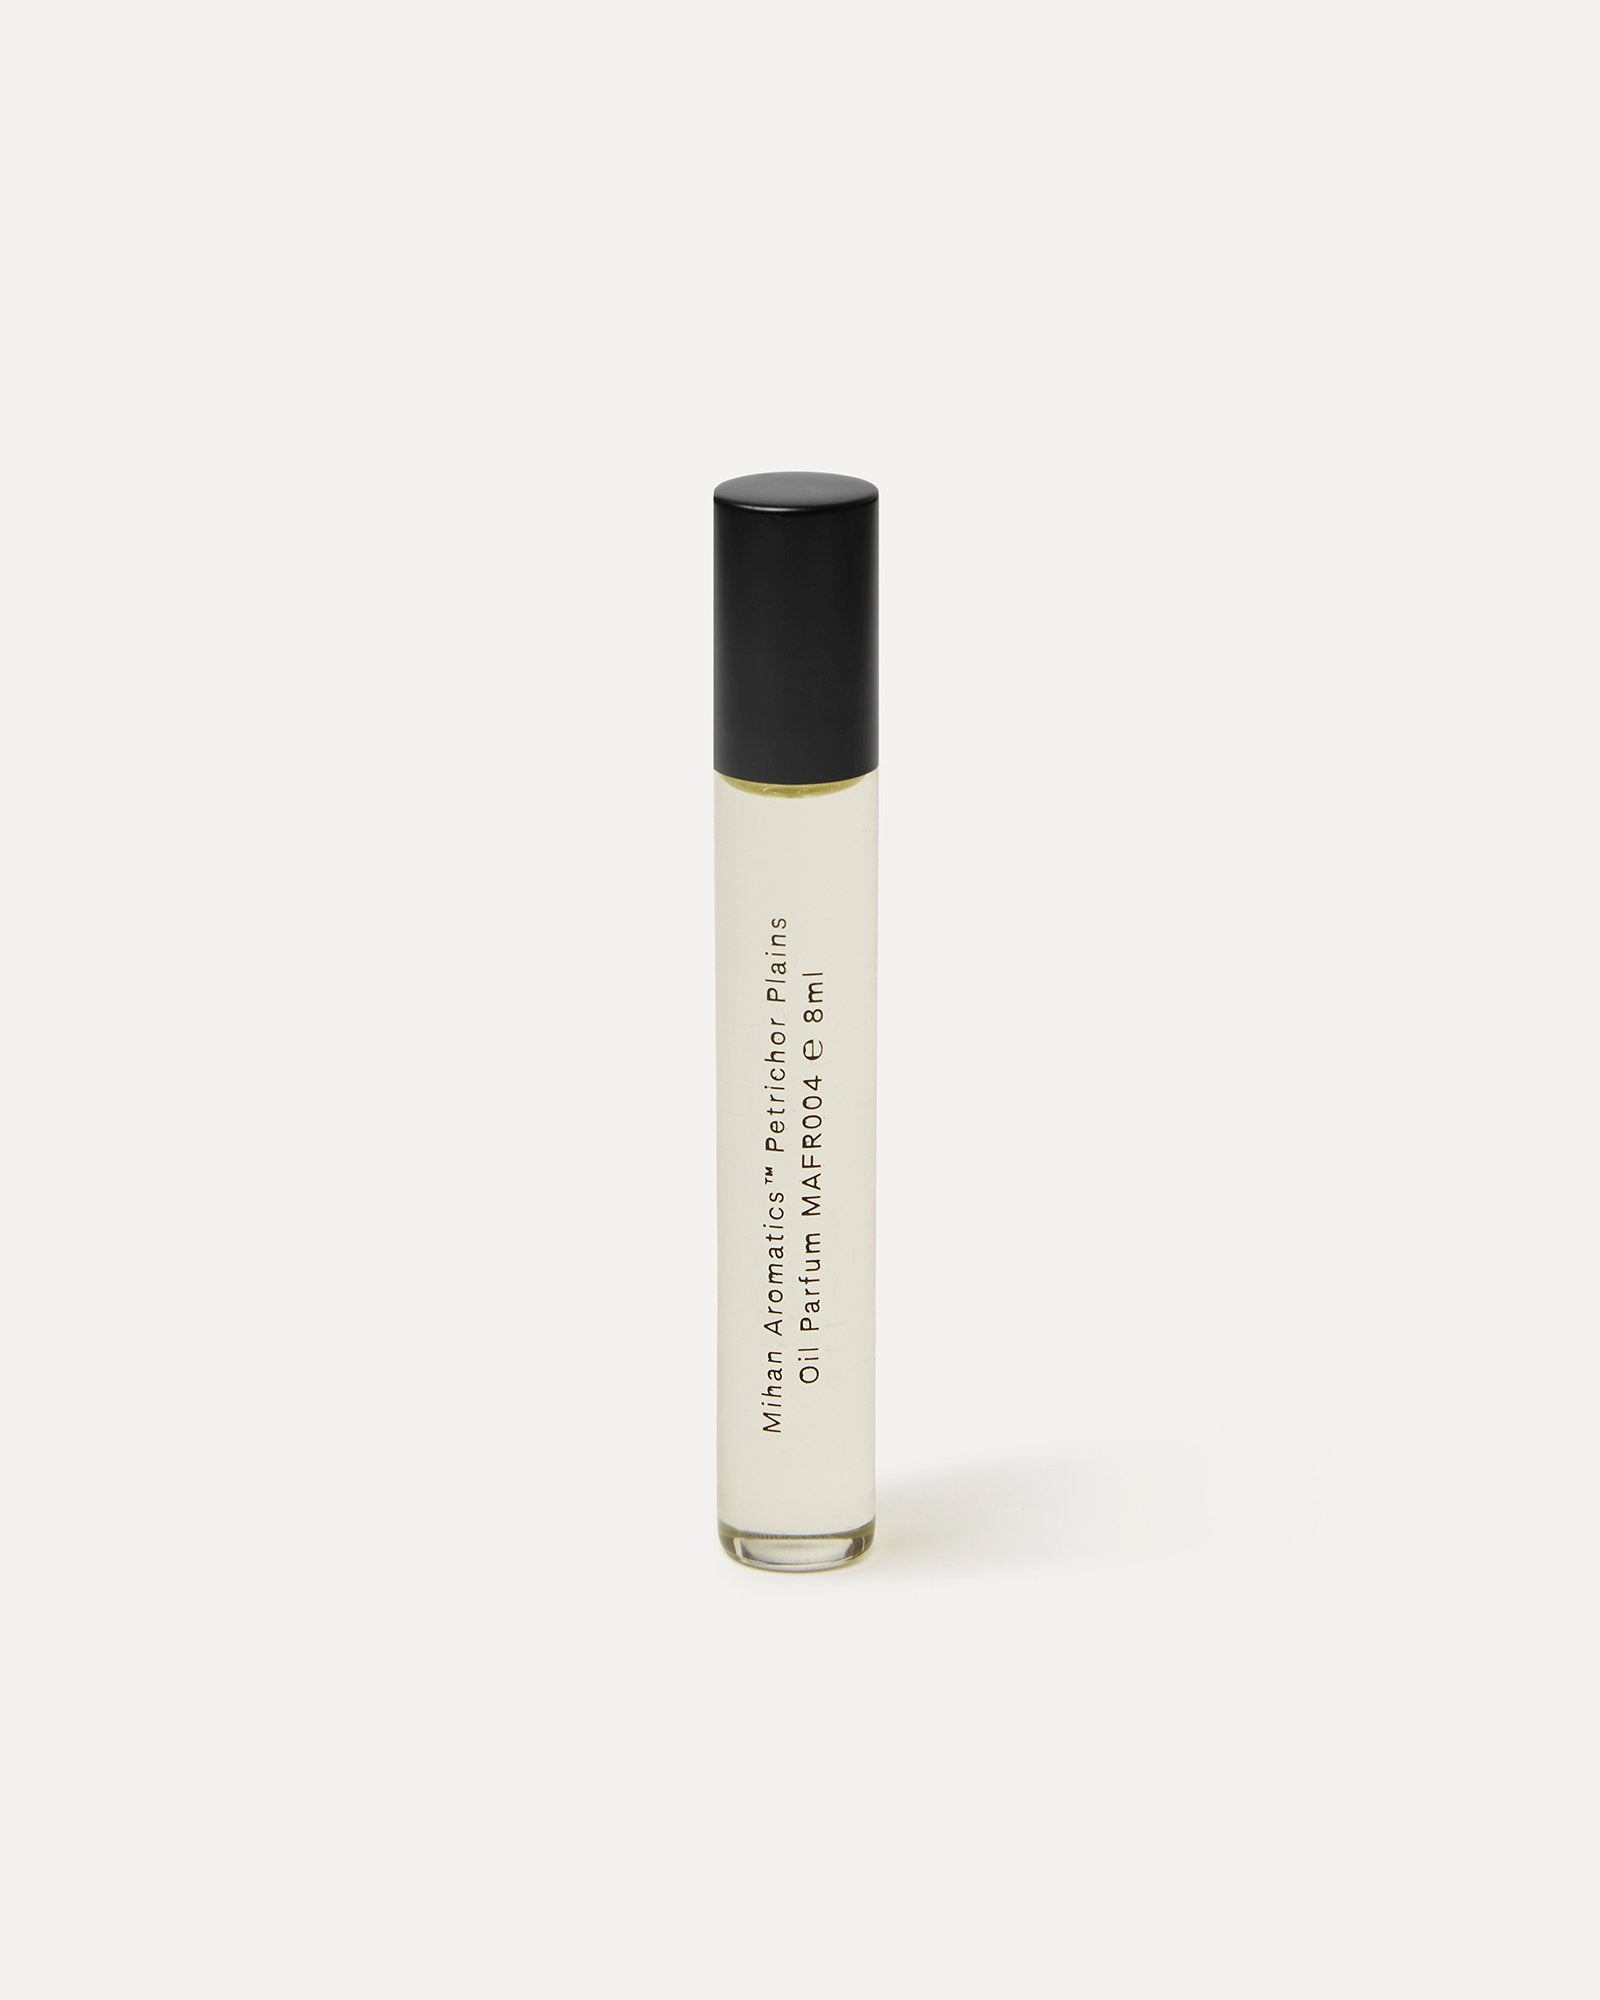 Mihan Aromatics Petrichor Plains Oil Parfum